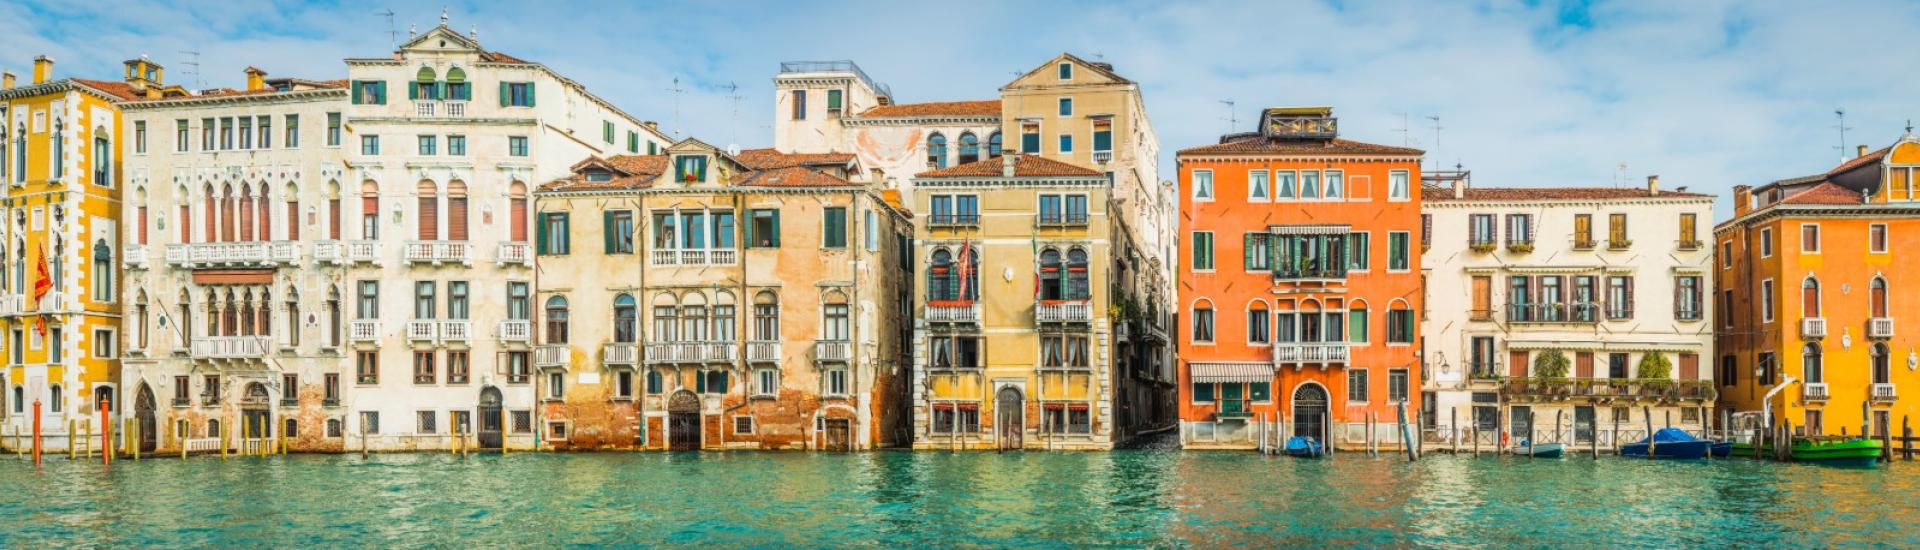 Photo of Venice villas along the Grand Canal.